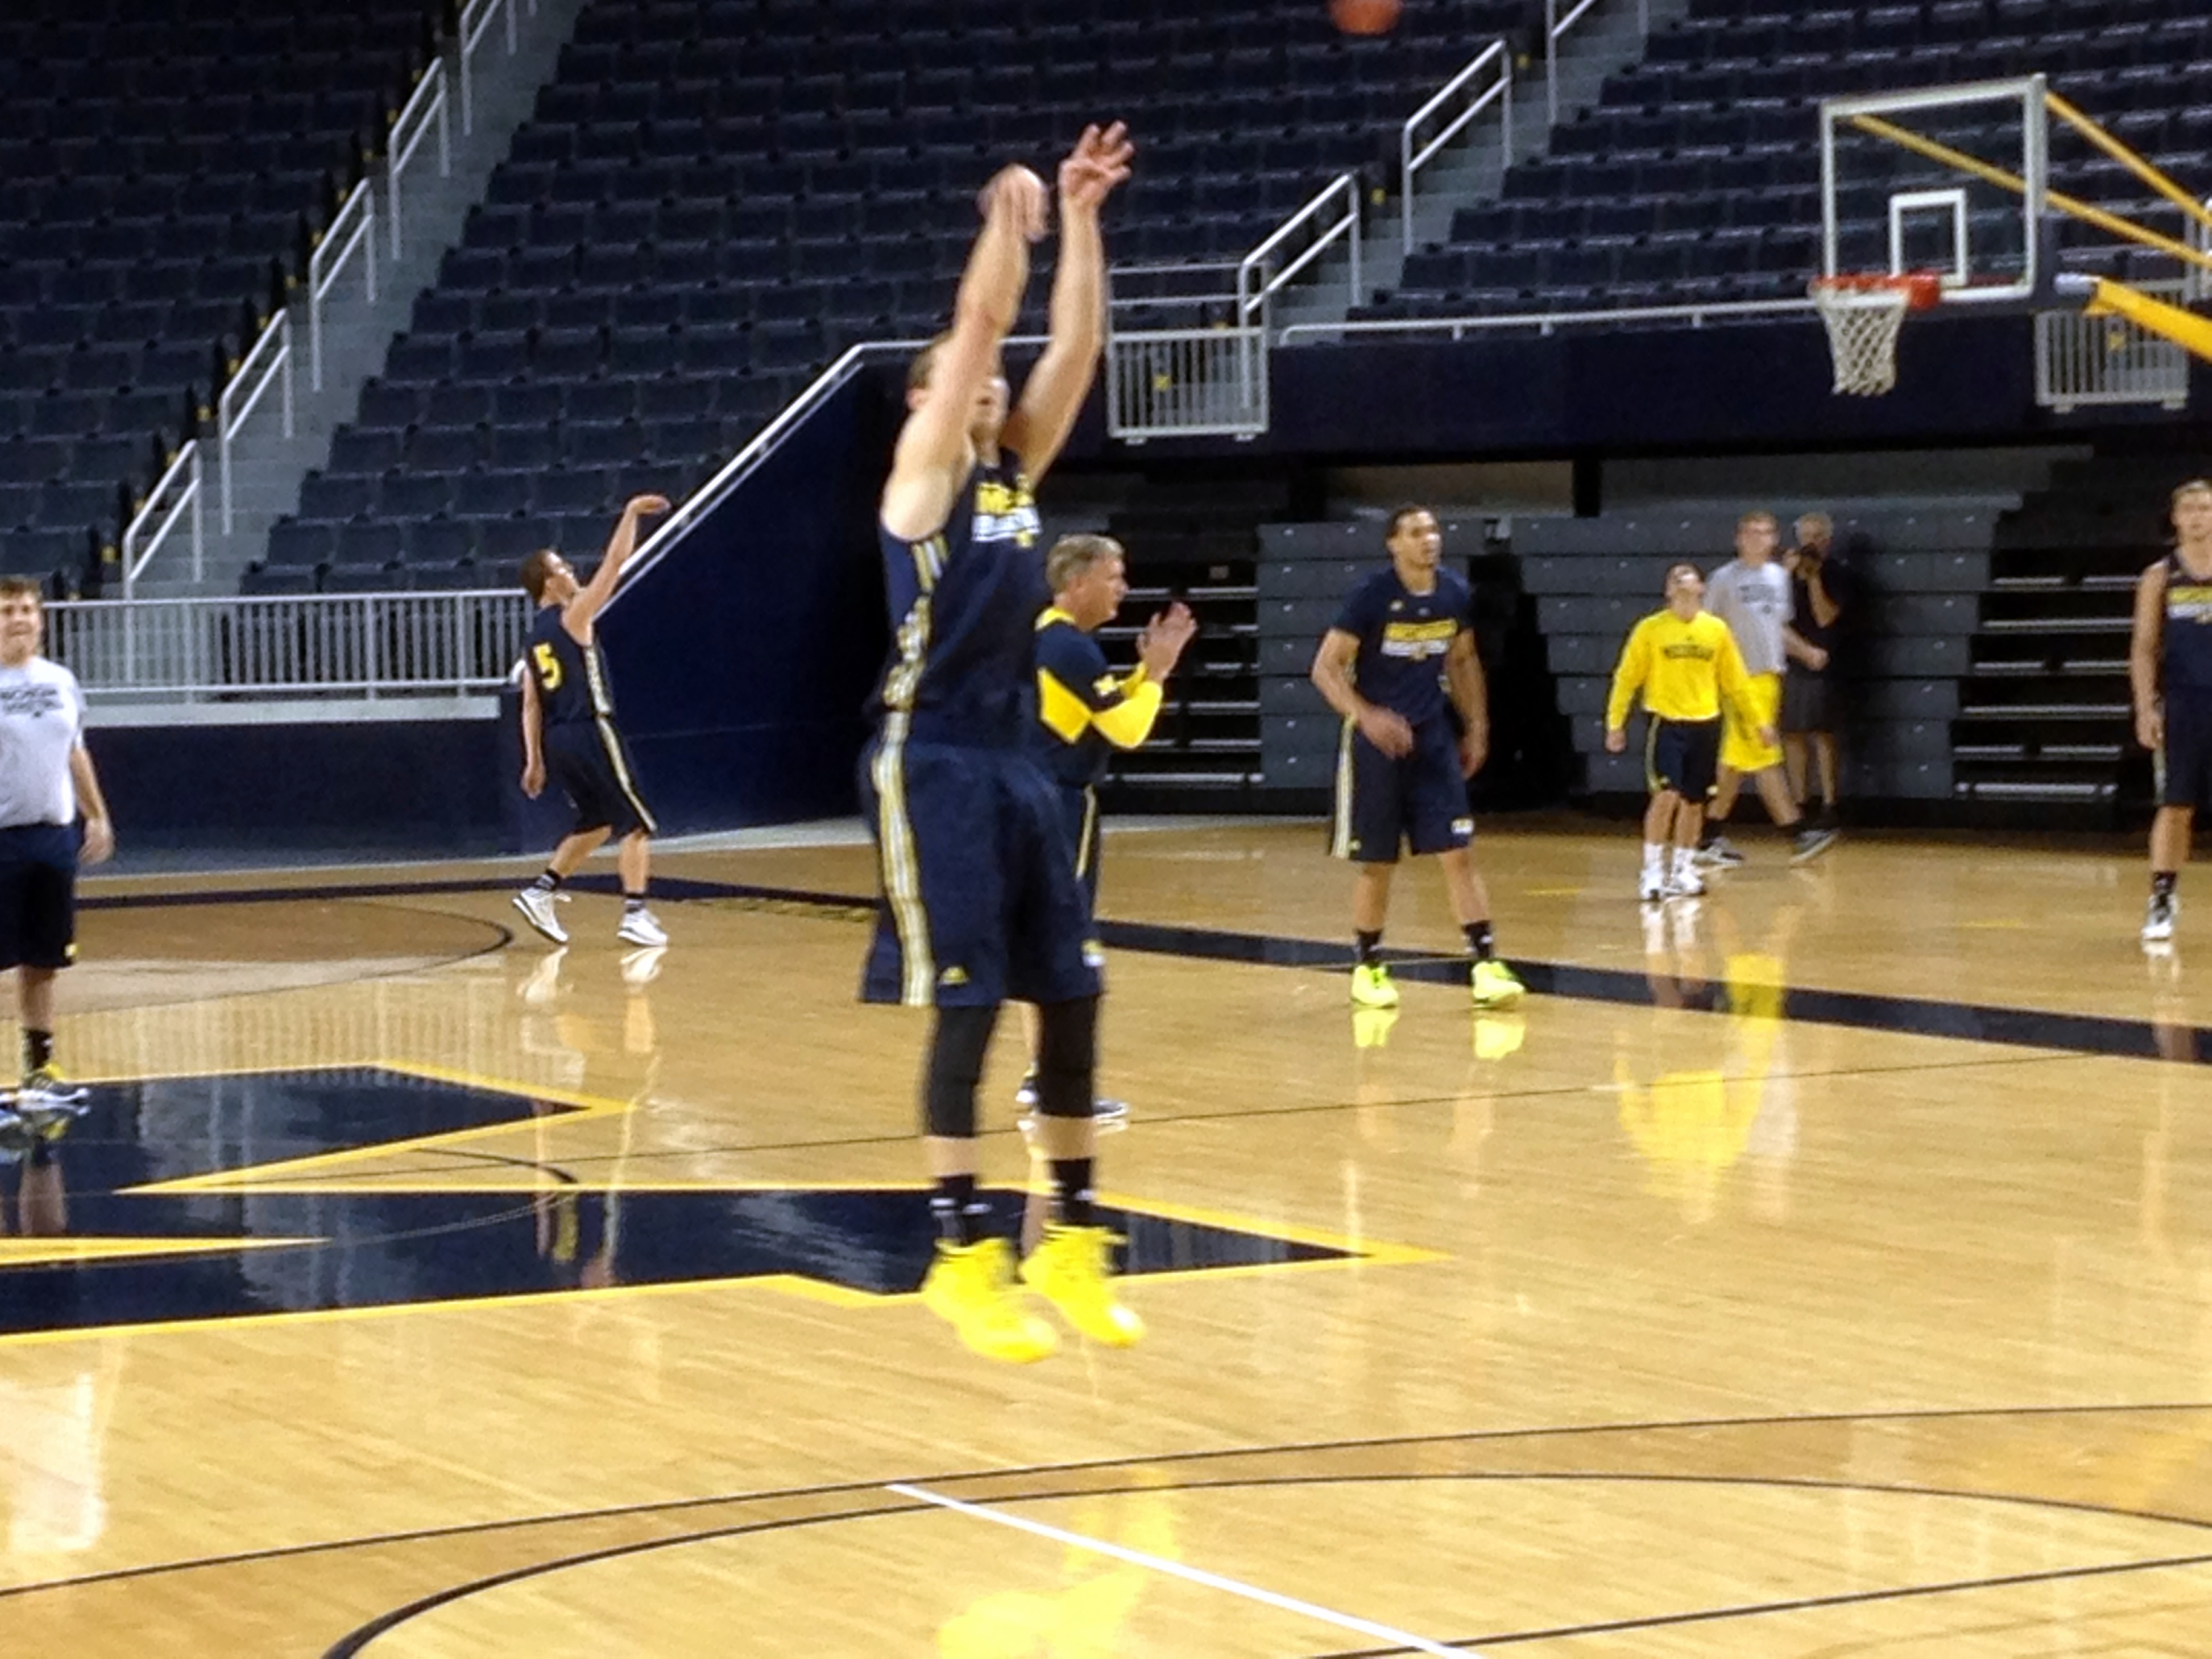 Michigan First Practice – 9